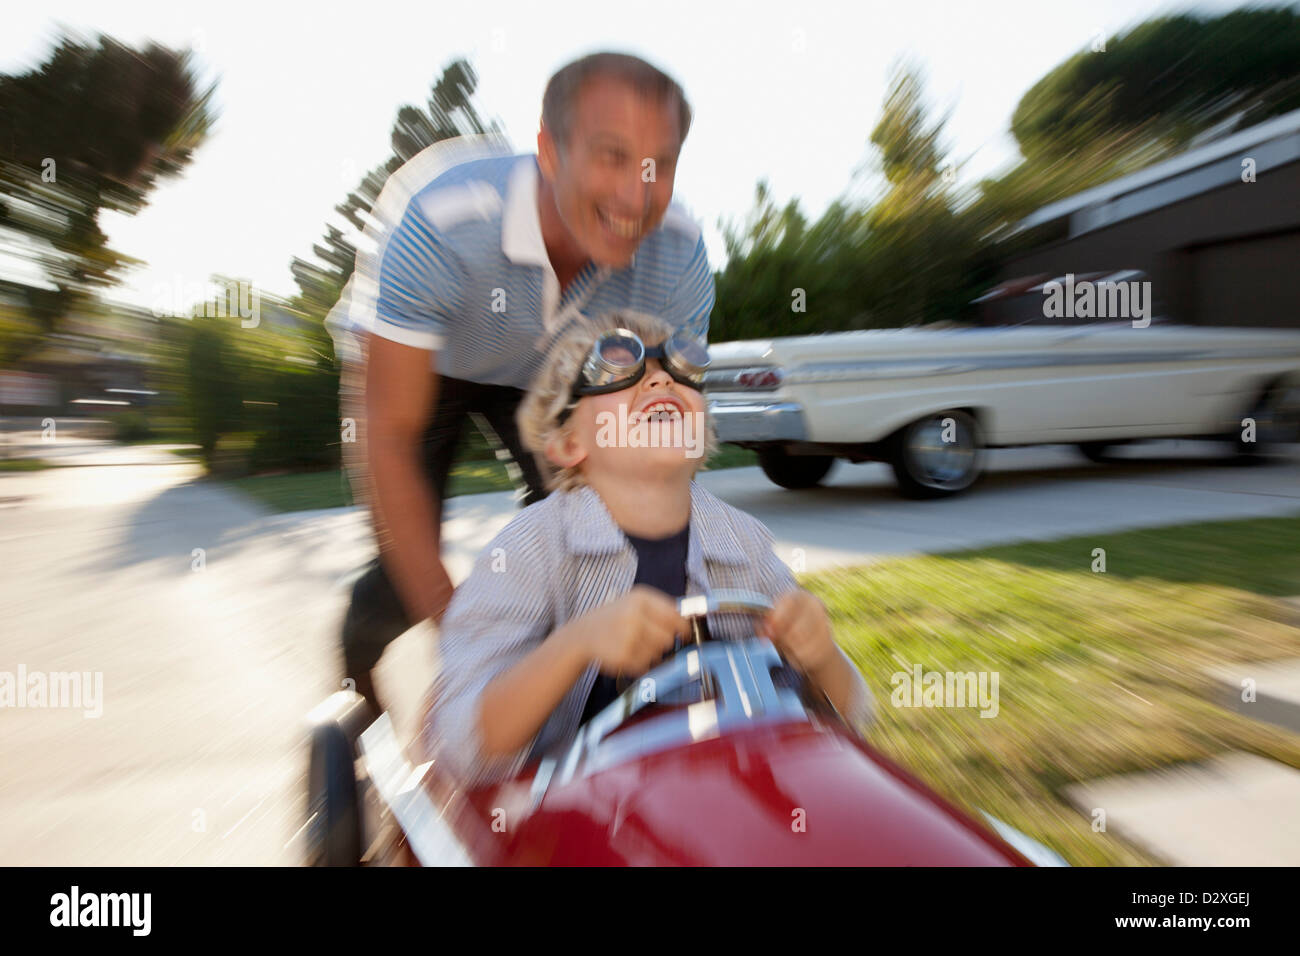 Time lapse view of father pushing son in go cart - Stock Image